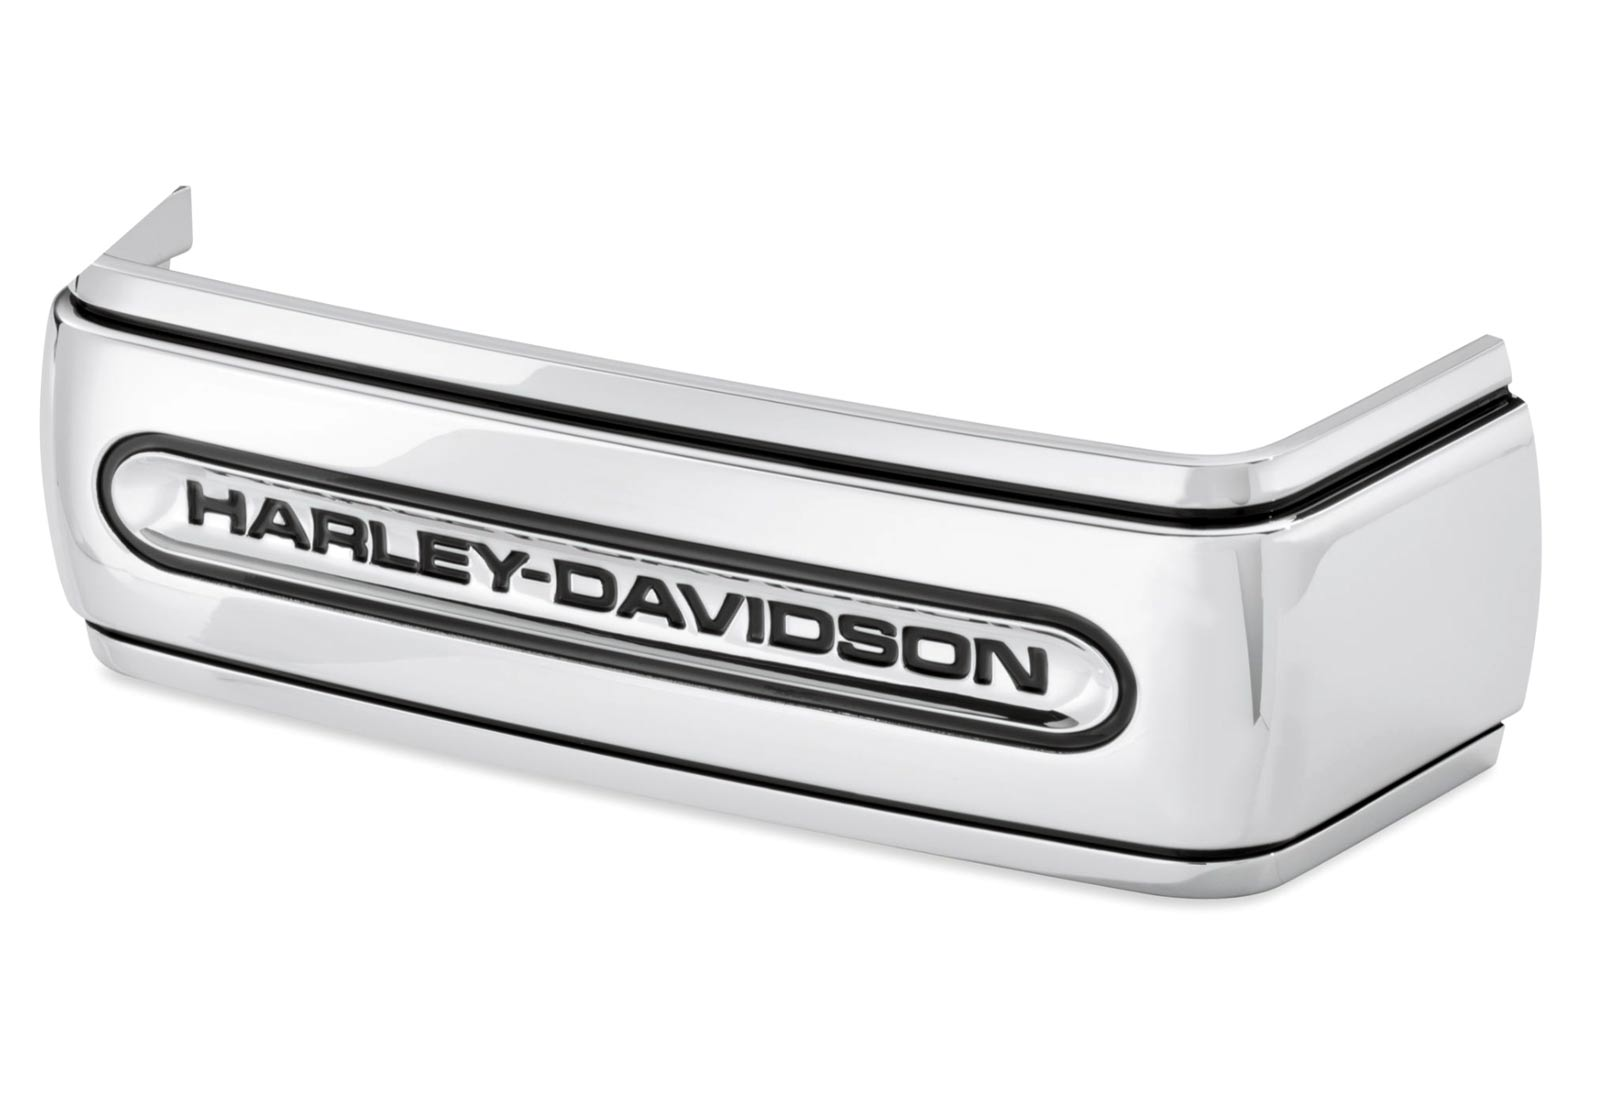 66443 06 battery cover band harley davidson script at thunderbike shop. Black Bedroom Furniture Sets. Home Design Ideas